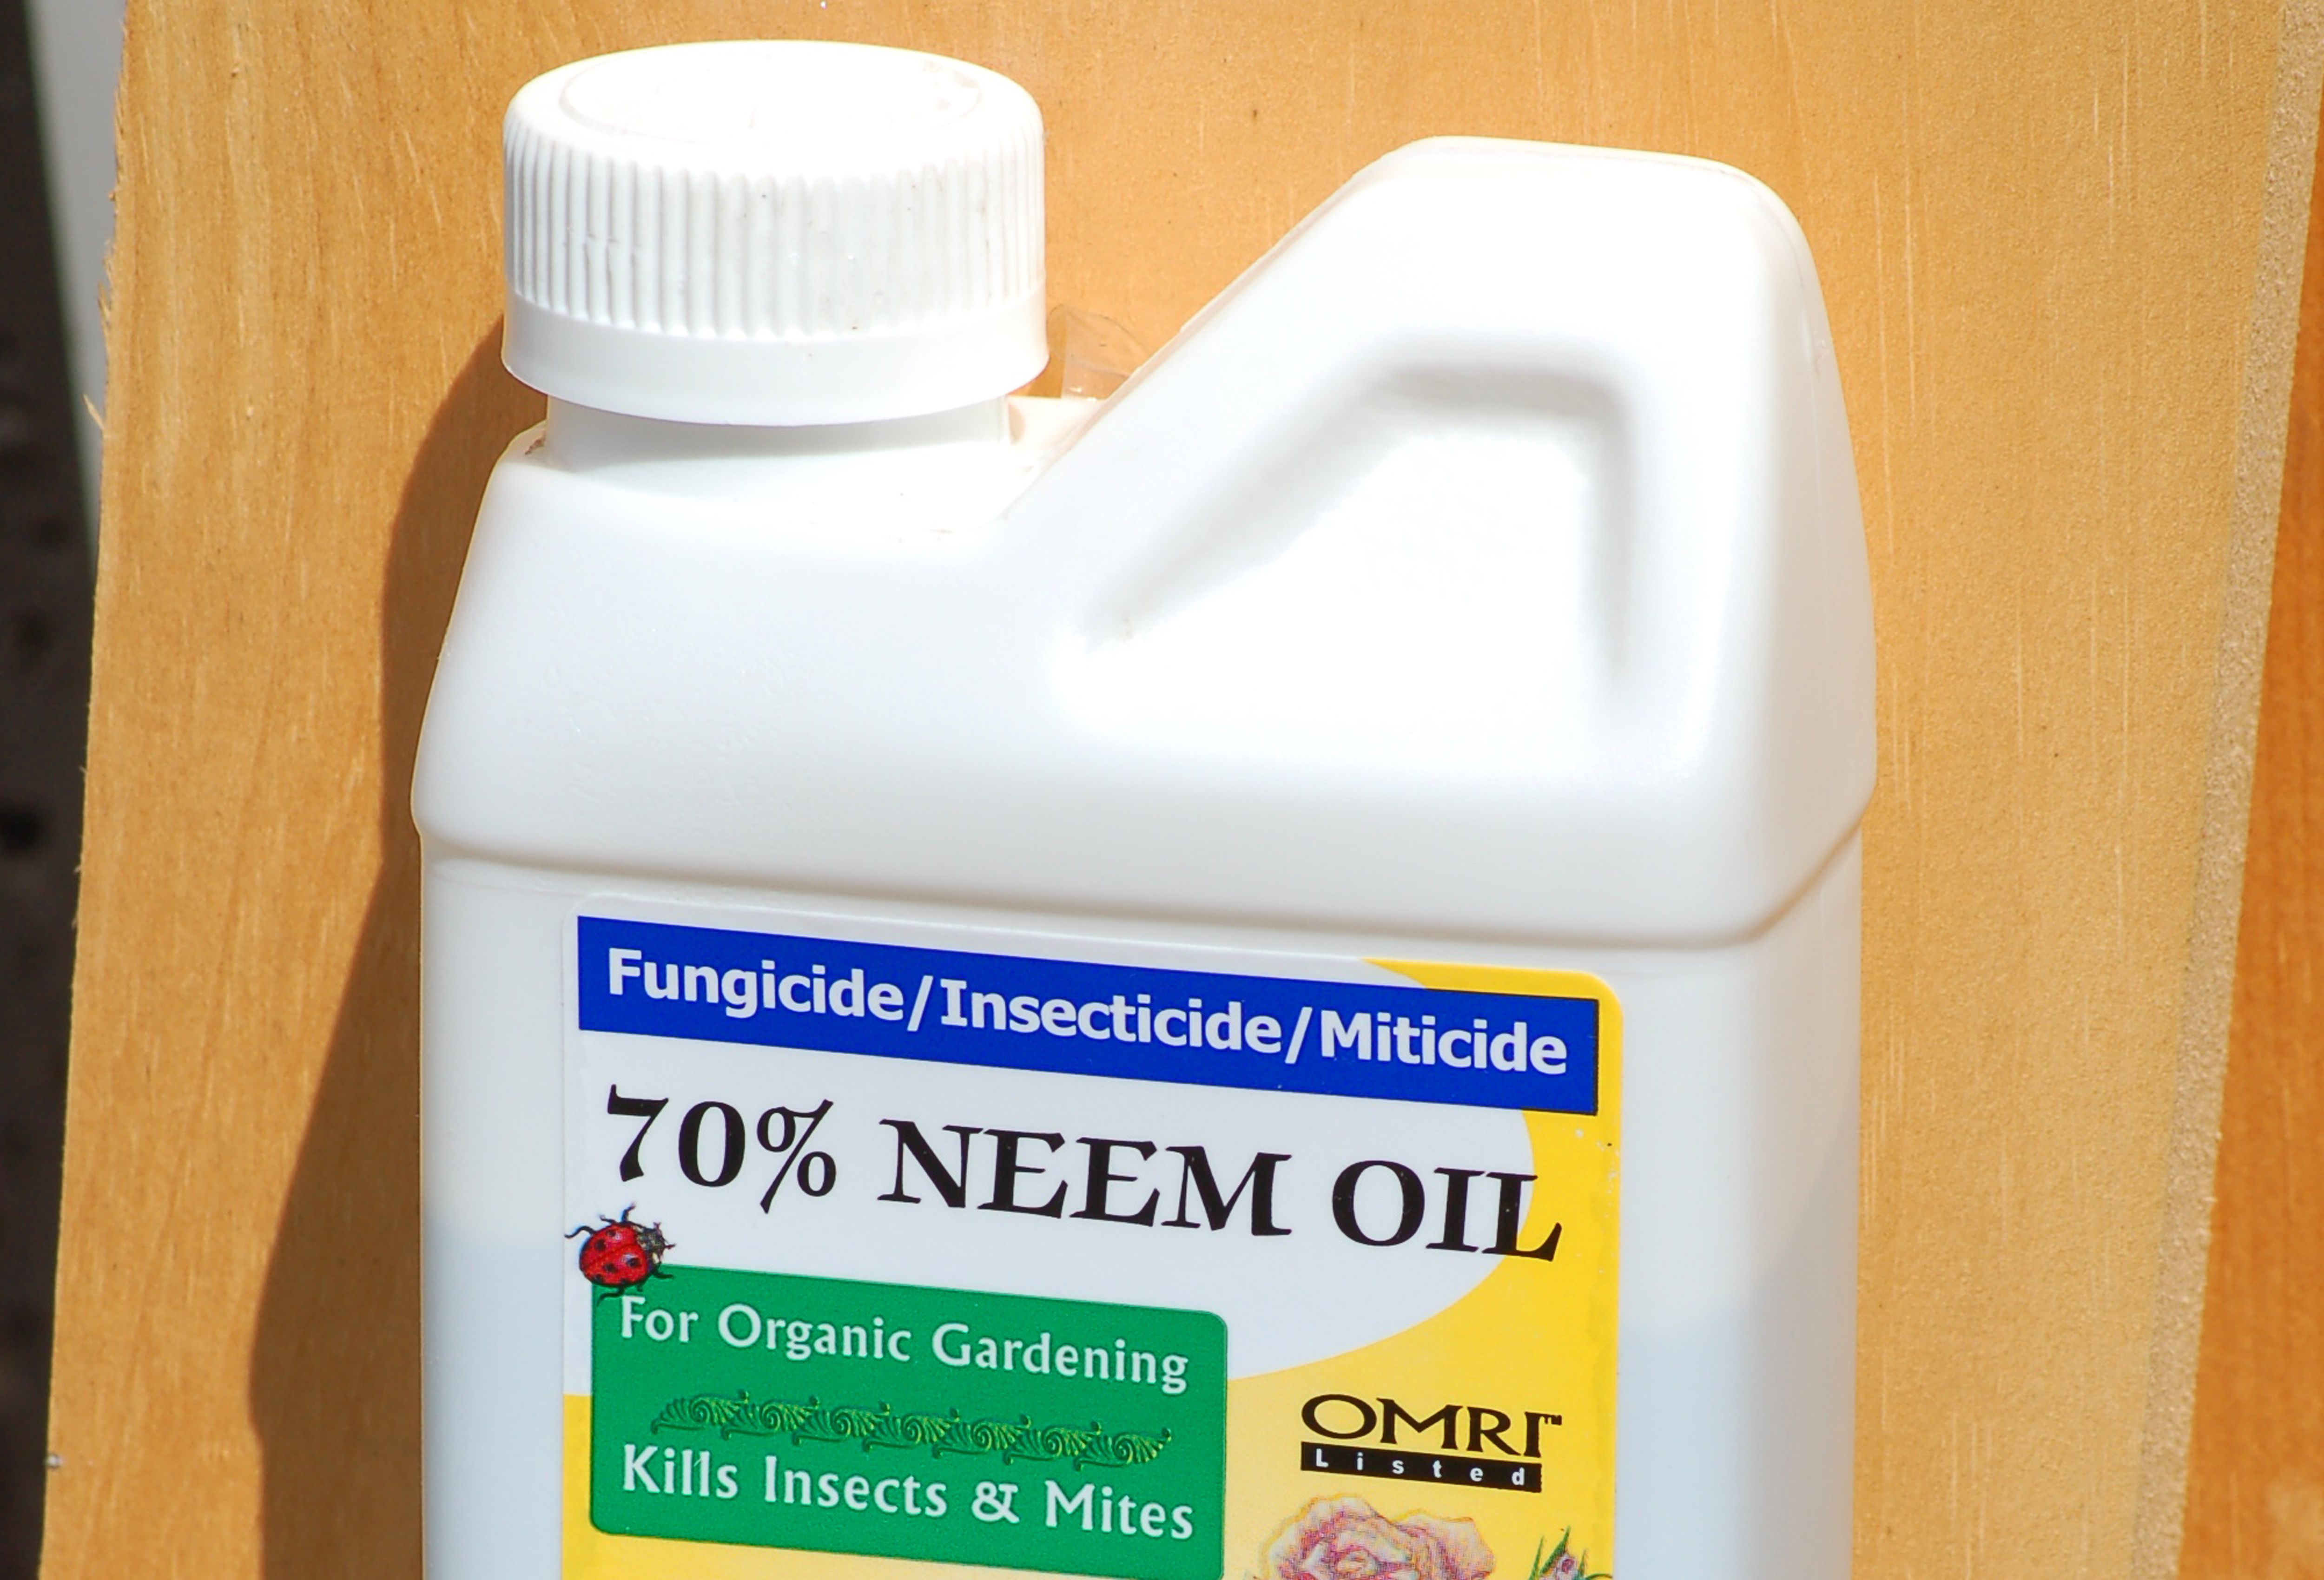 Using Neem Oil On Plants As An Organic Insecticide